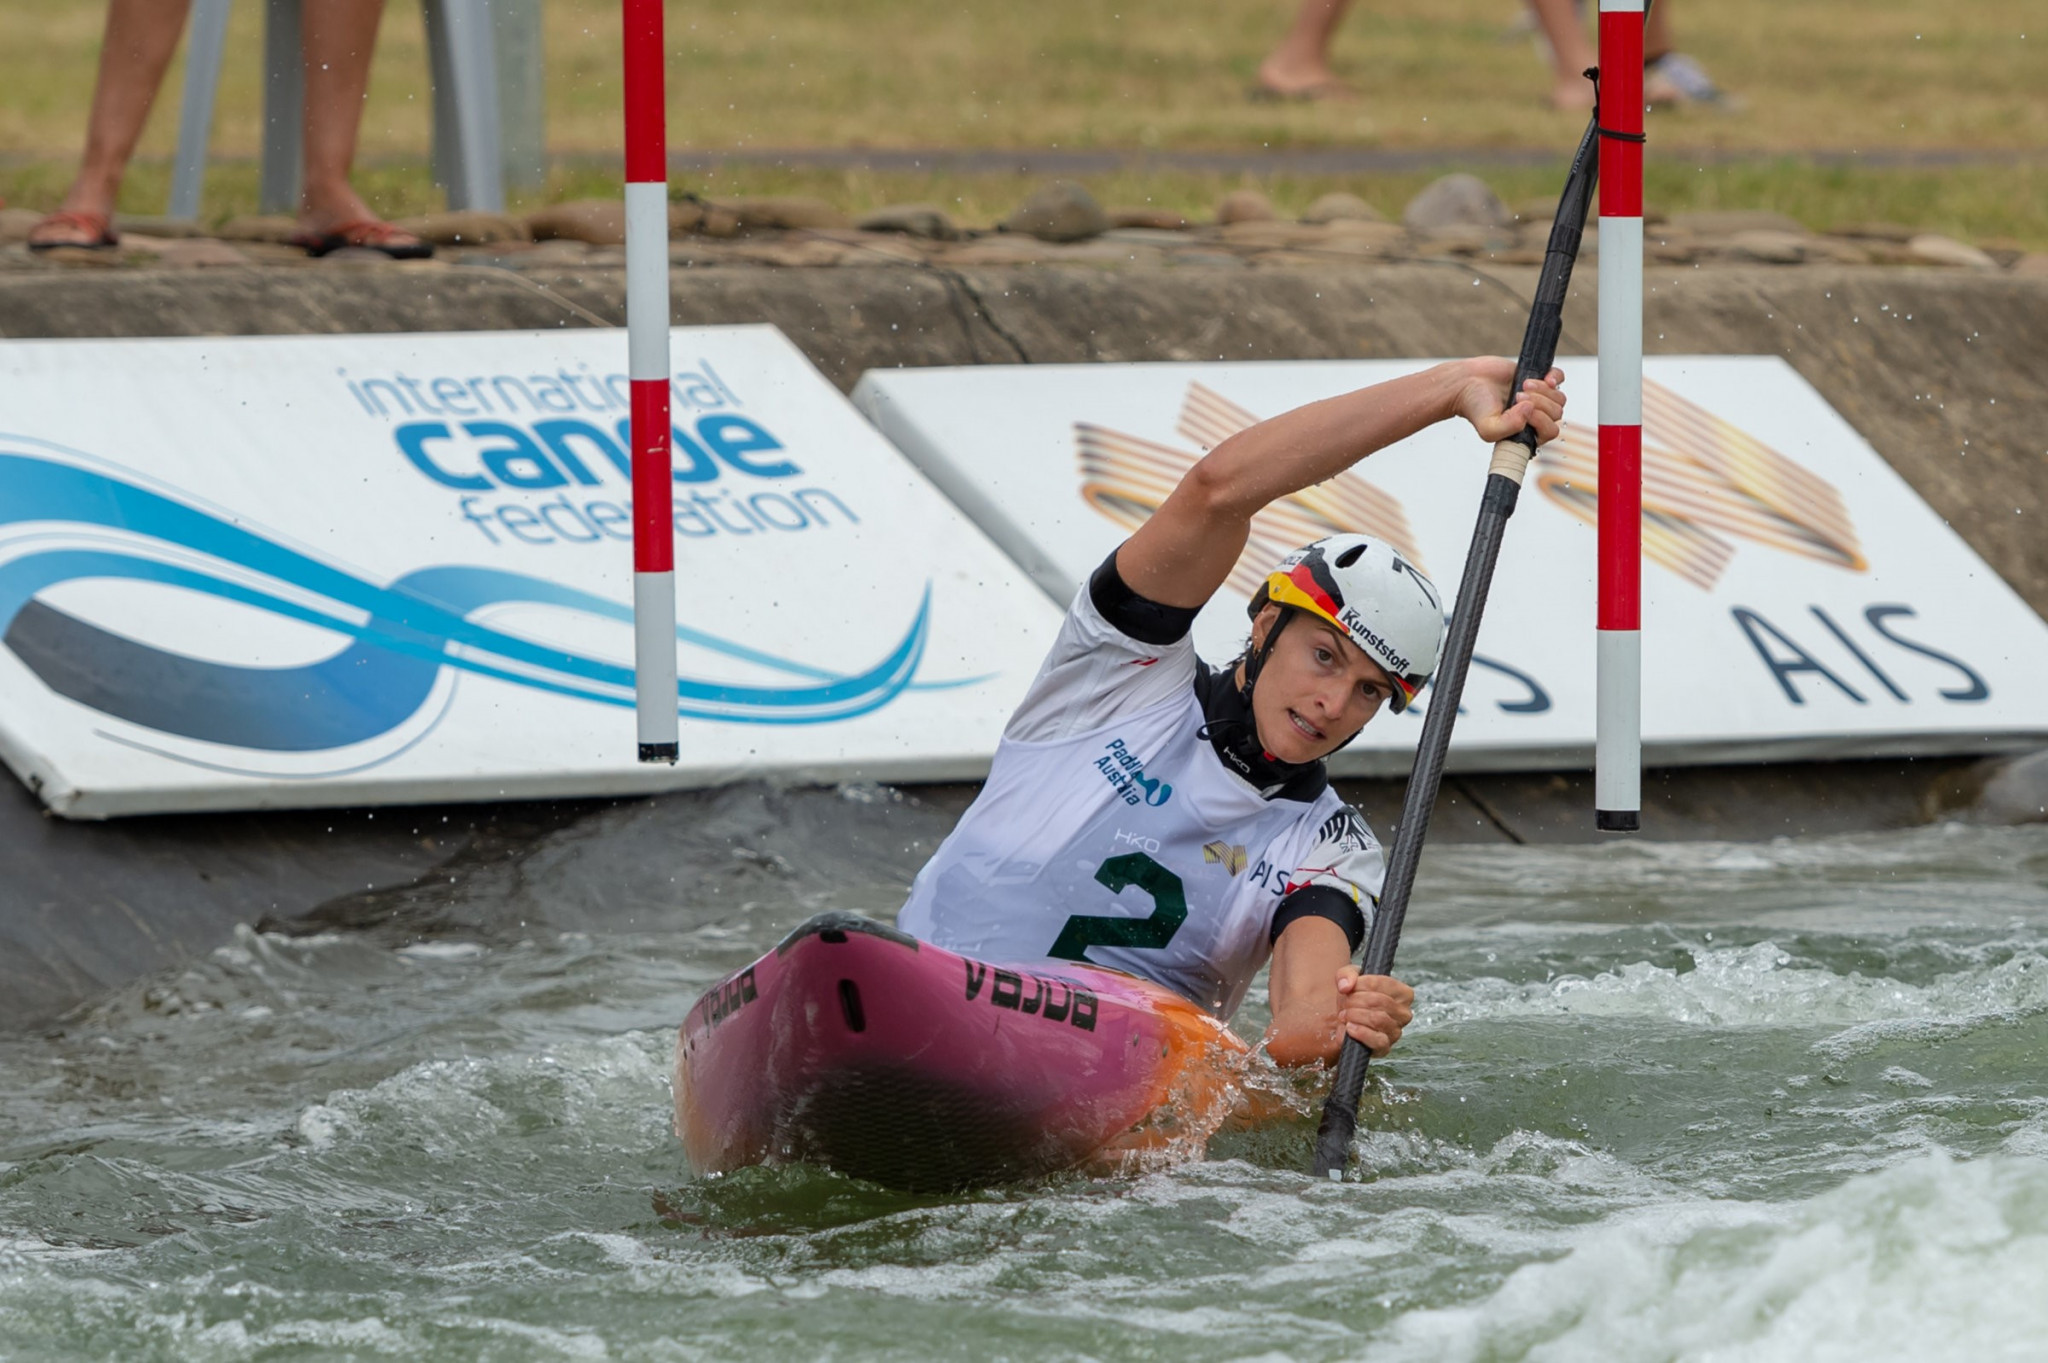 Funk and Anton earn victories at Oceania Canoe Slalom Championships